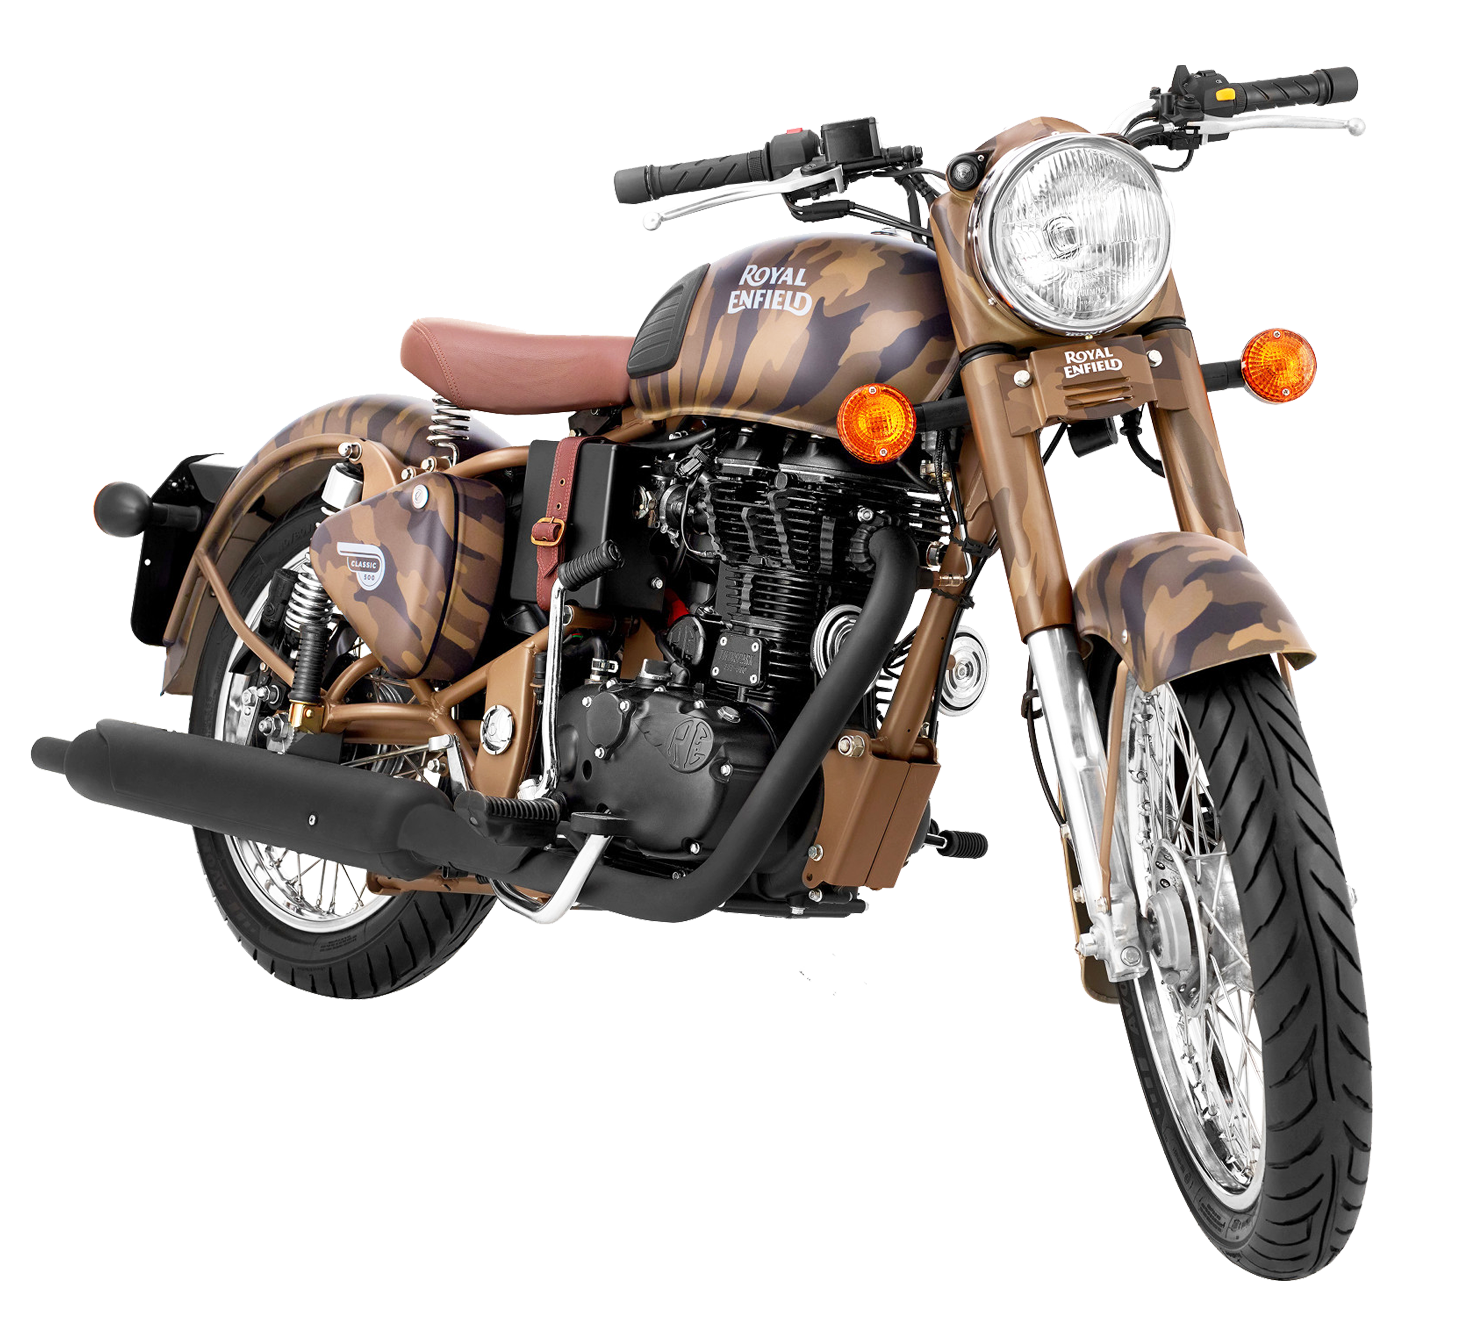 Motorcycle clipart bullet bike. Royal enfield png images